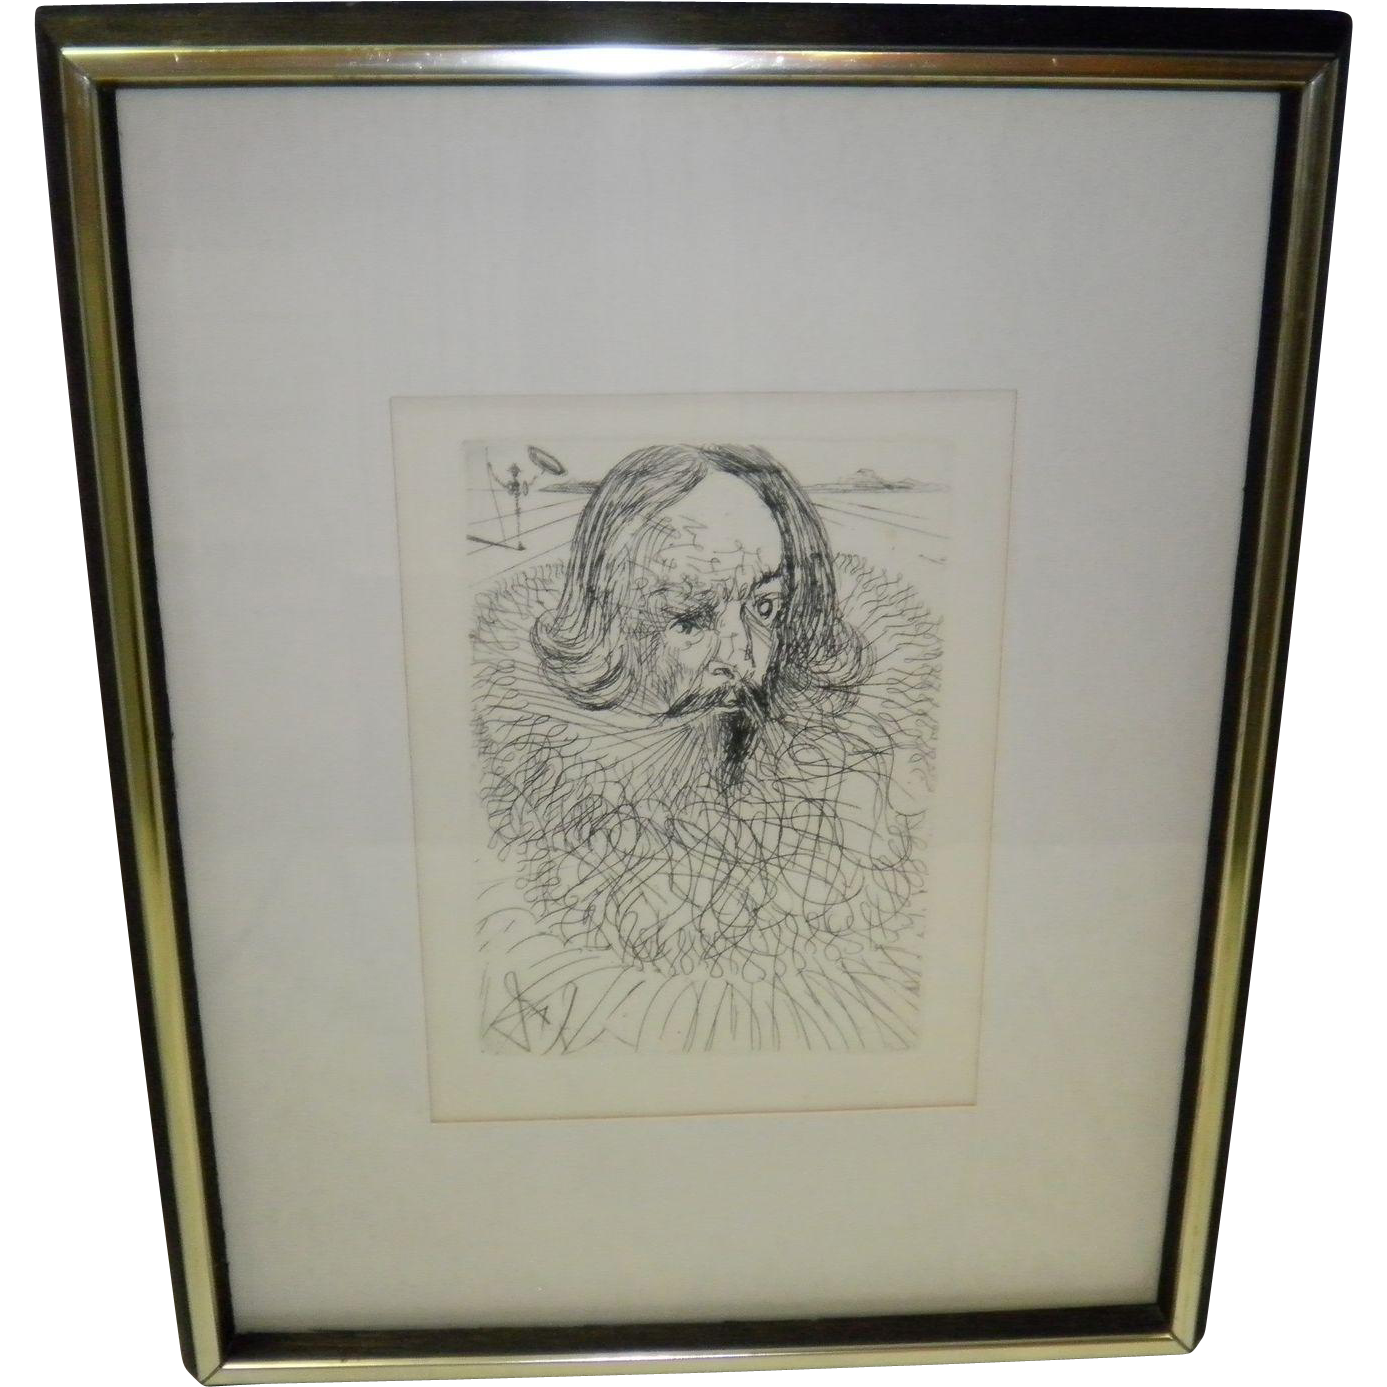 Cervanties By Dalli Original Etching Signed In Plate